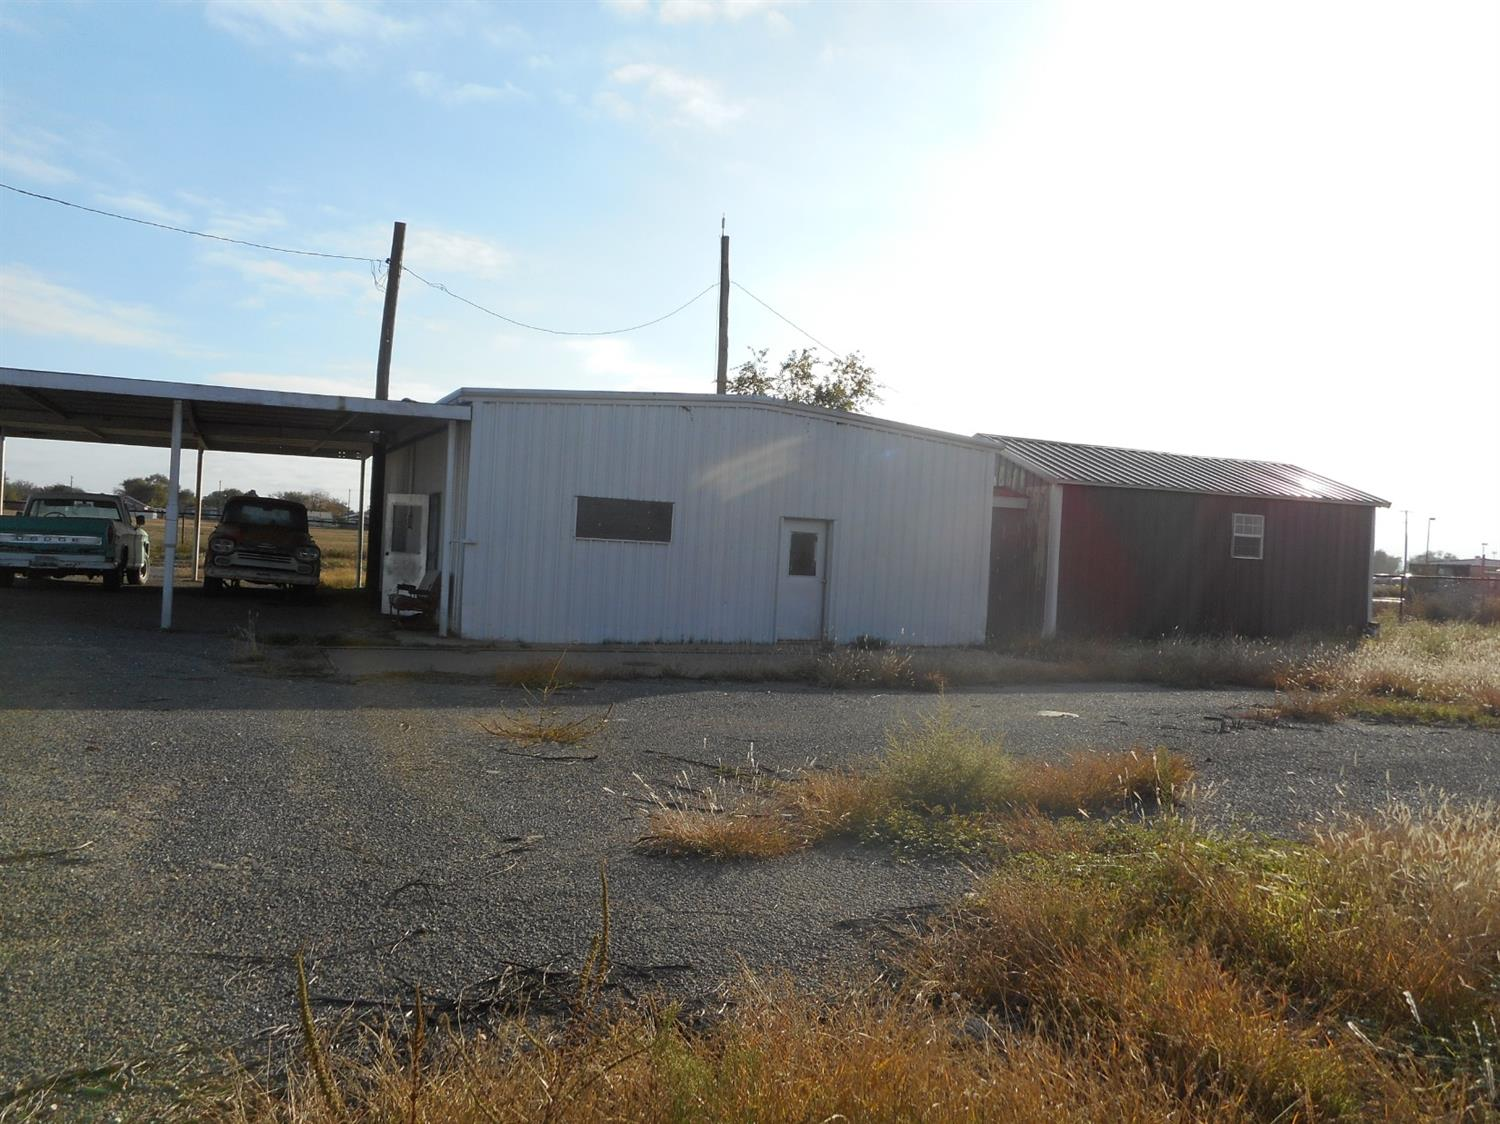 1.5 acres fenced w/ water well.  Has 1200 sq. ft shop, 1600 sq. ft carport & 308 sq. ft office w/ bathroom.